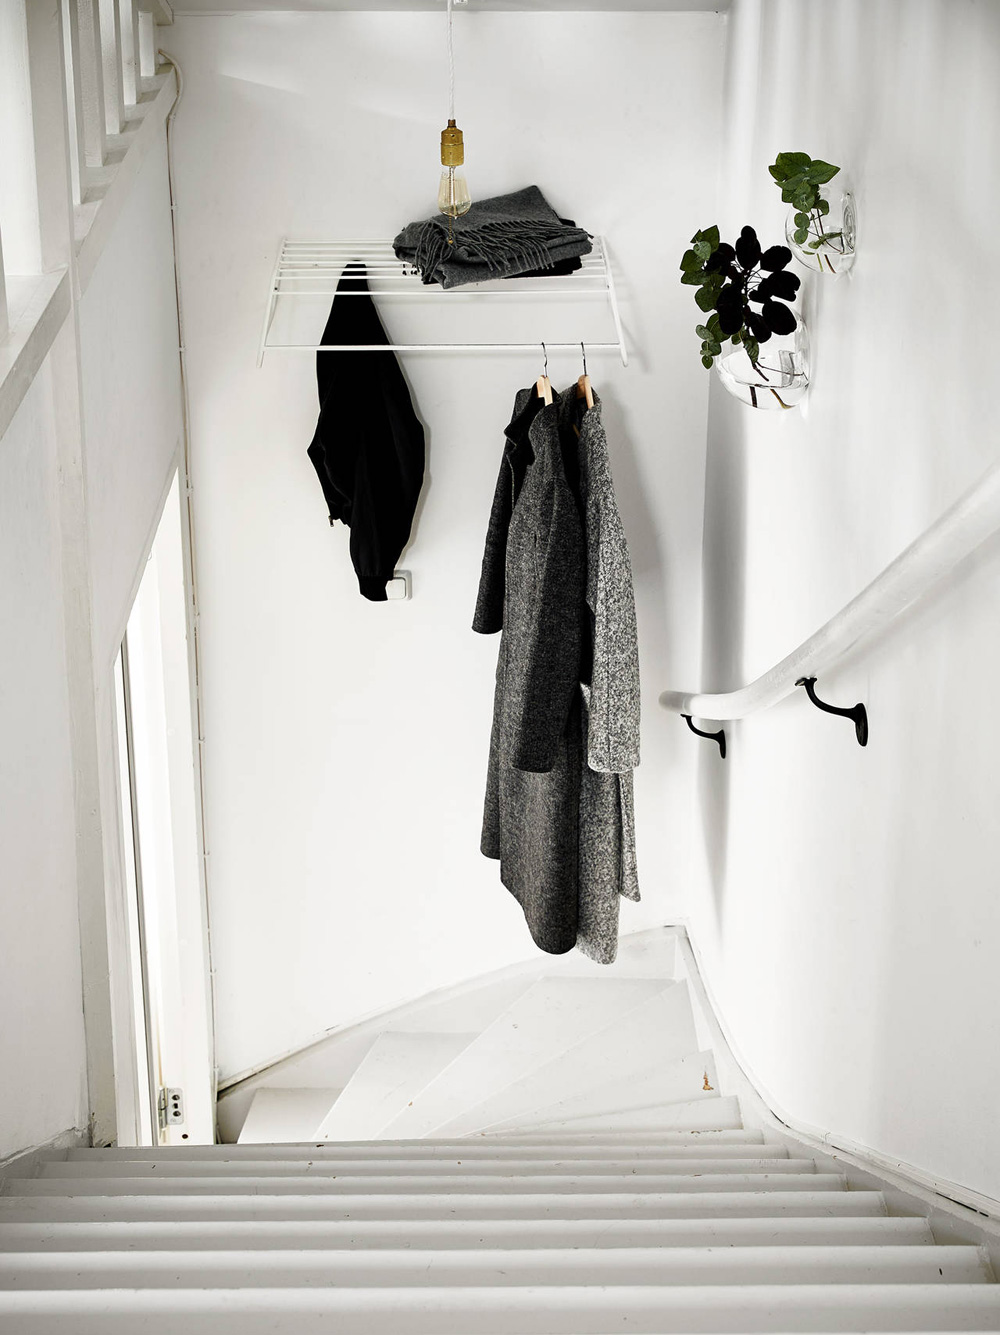 Oracle-Fox-Sunday-Sanctuary-Elsewhere-Small-Apartment-living-Alternative-Scandinvian-Interior-13